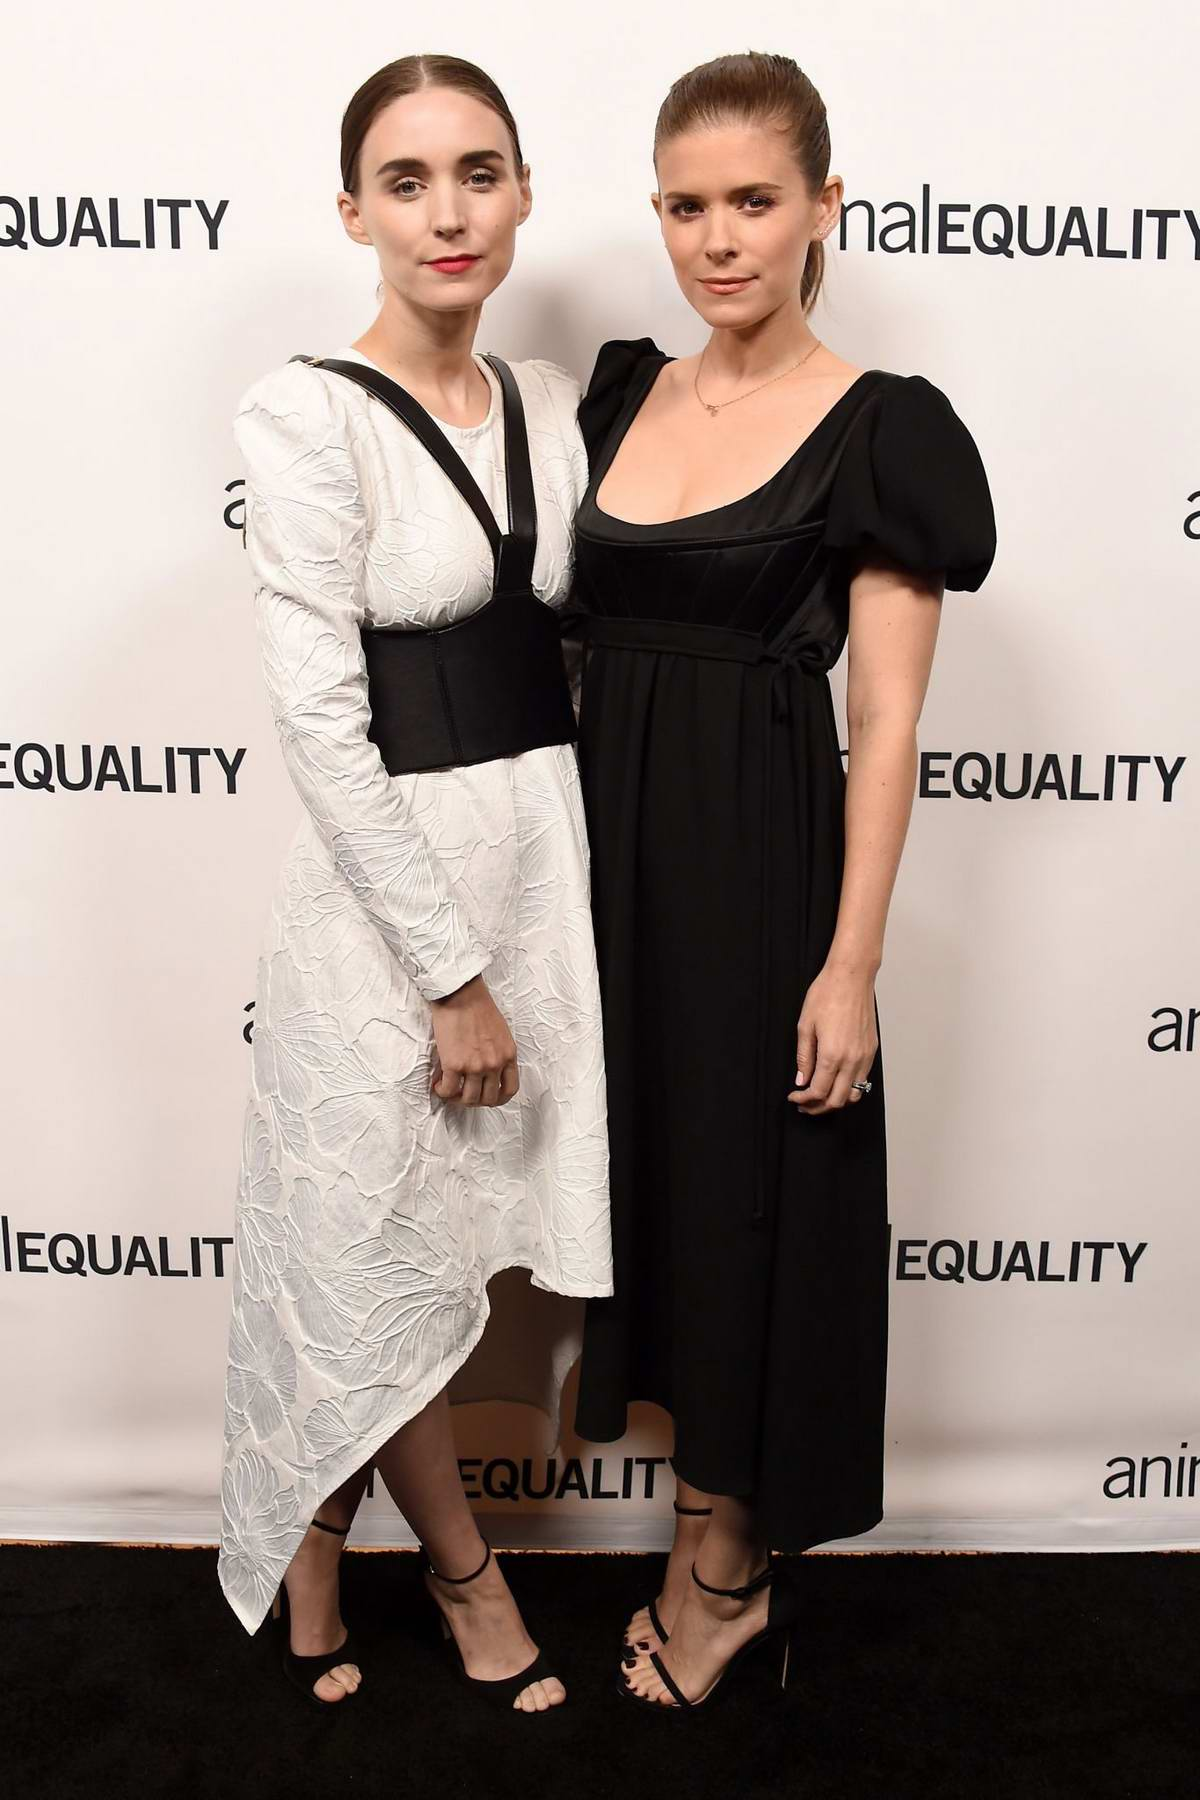 Kate and Rooney Mara attends the Animal Equality's Inspiring Global Action Los Angeles Gala in Beverly Hills, California